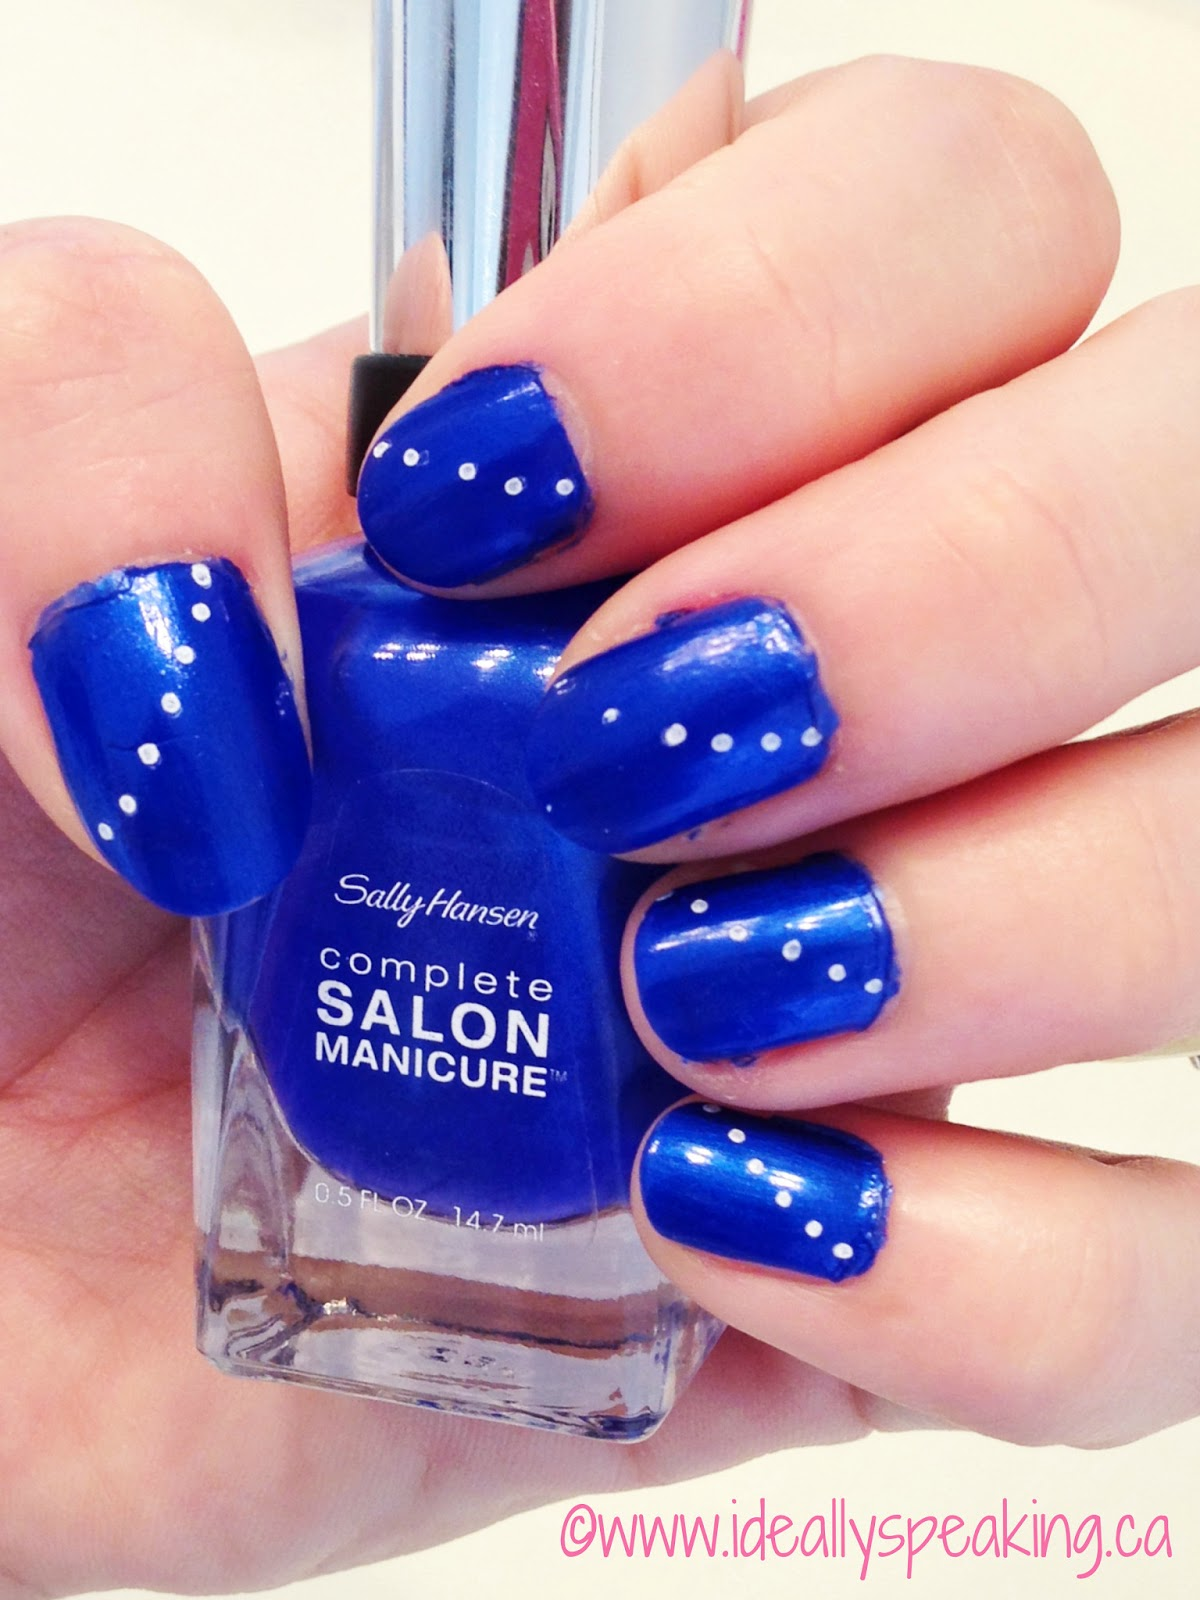 Electric blue nails with white polka dots.